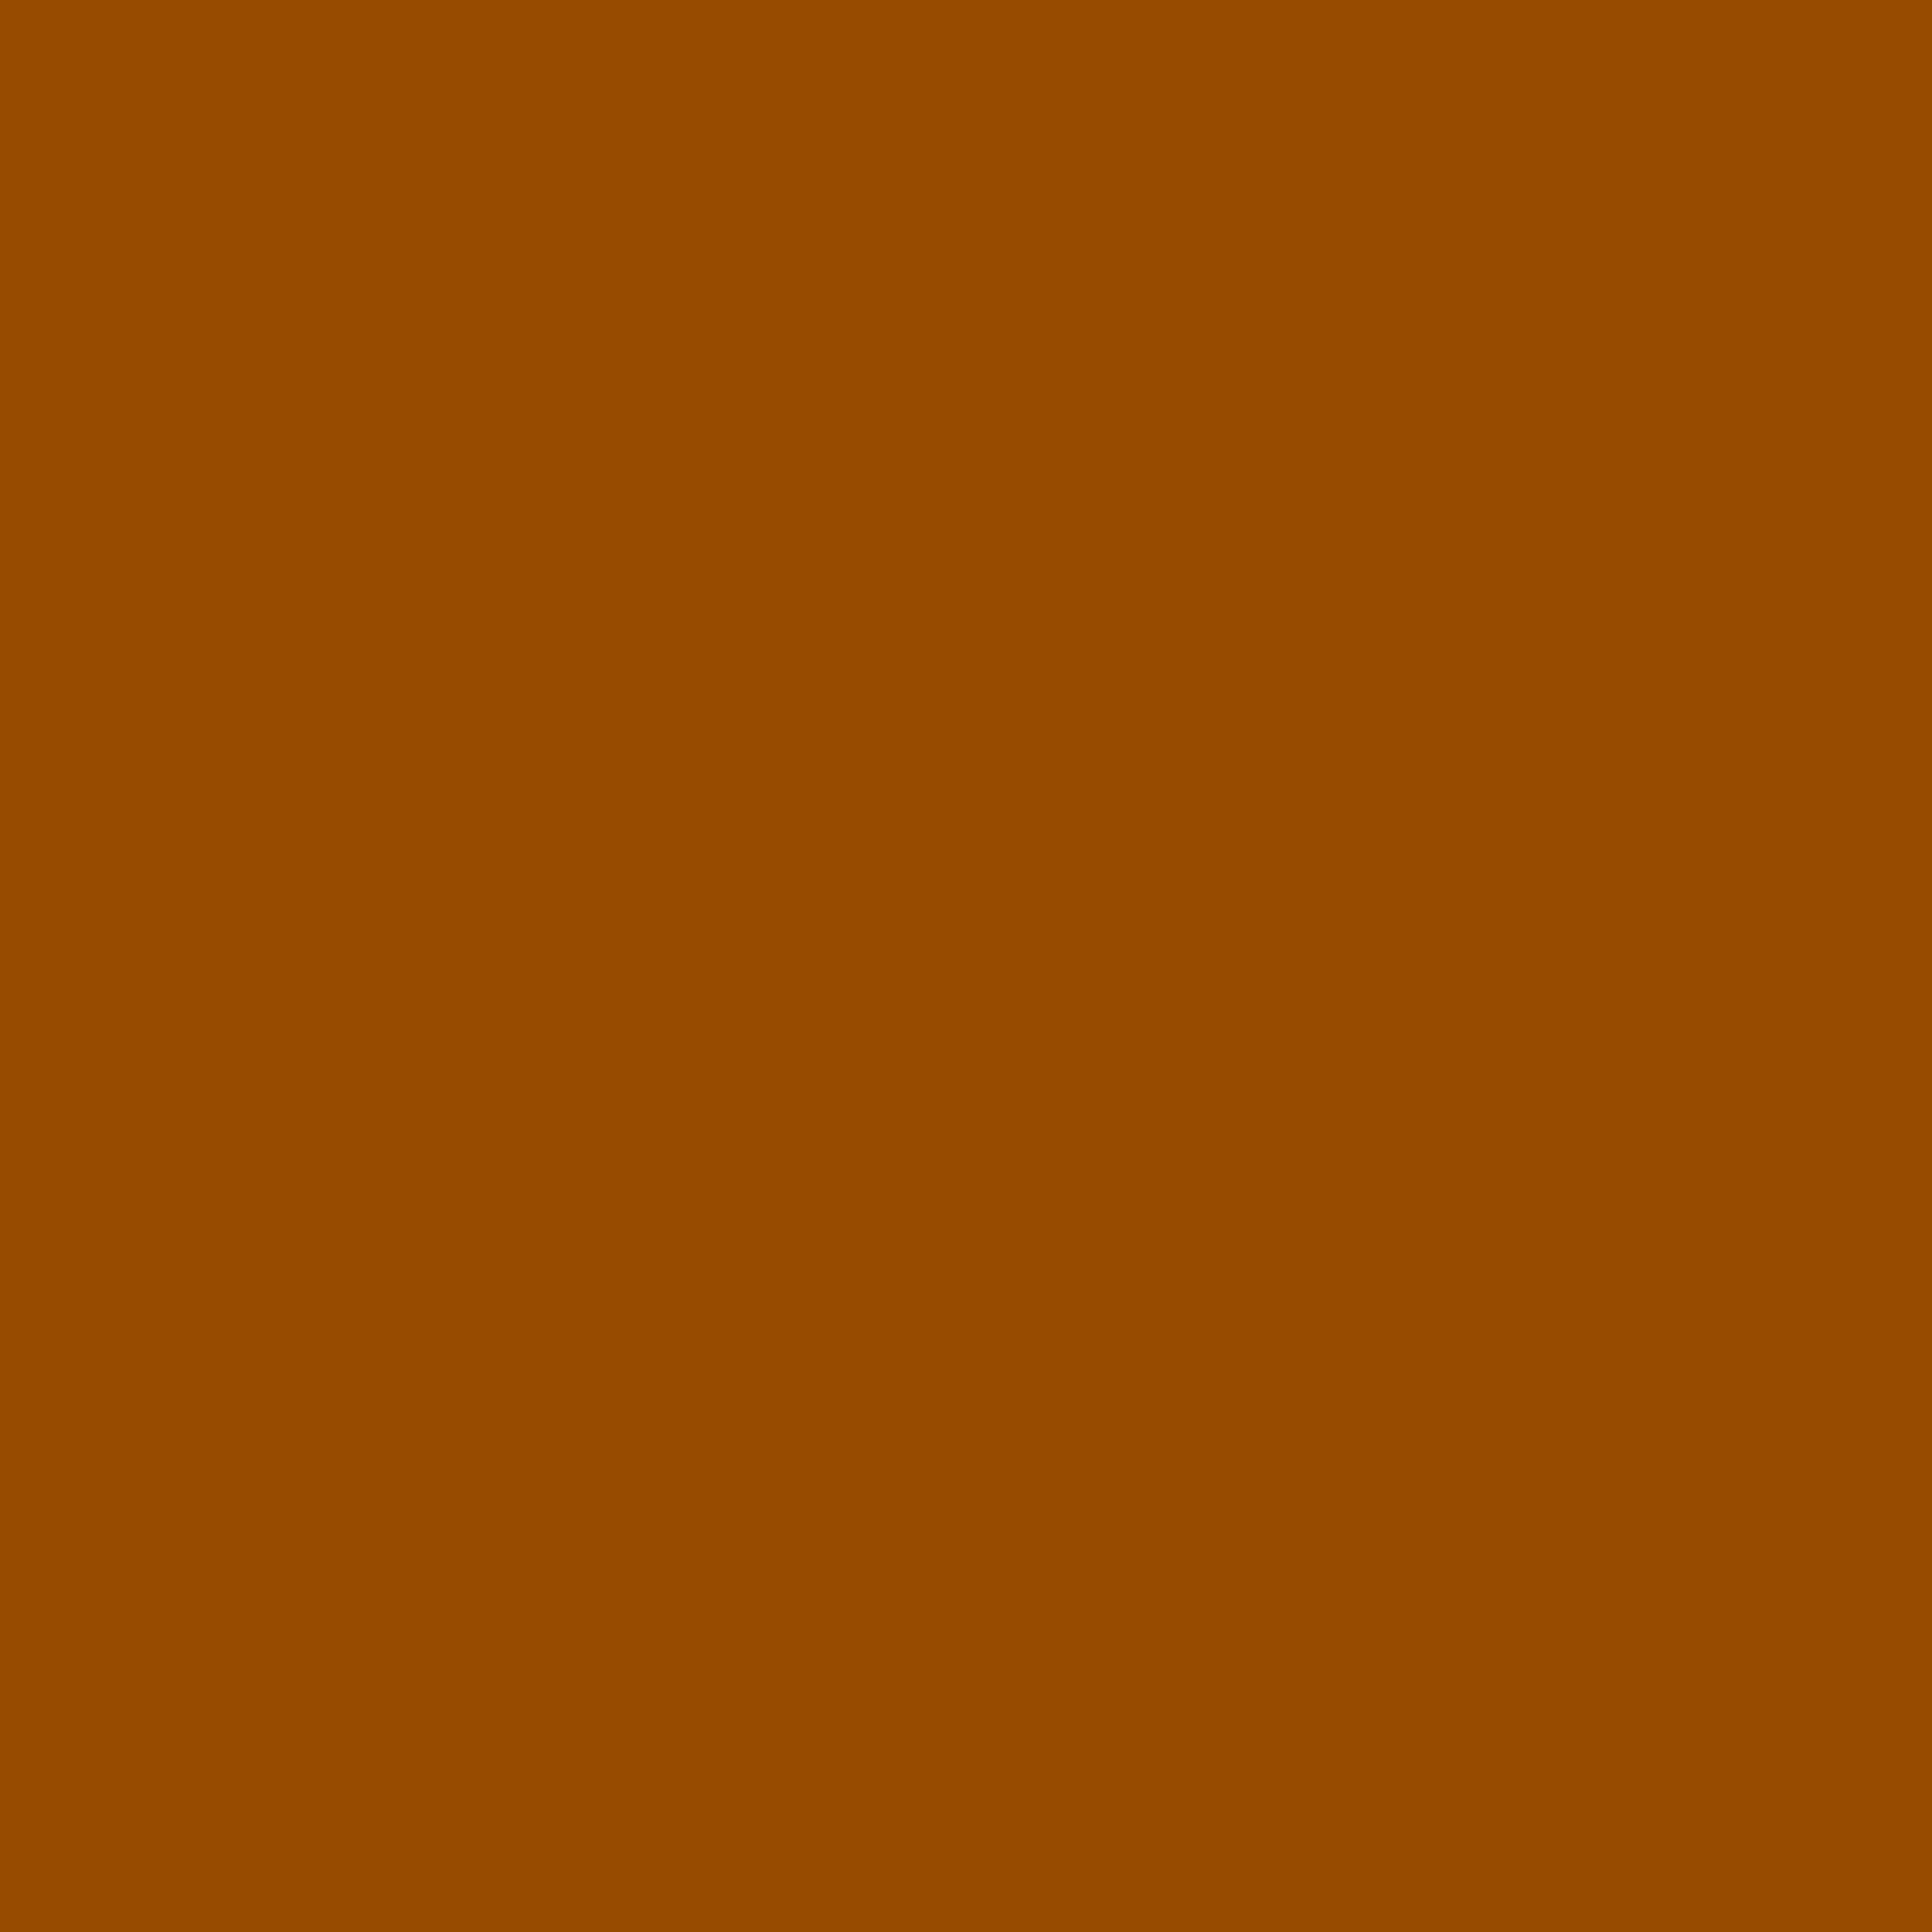 3600x3600 Brown Traditional Solid Color Background